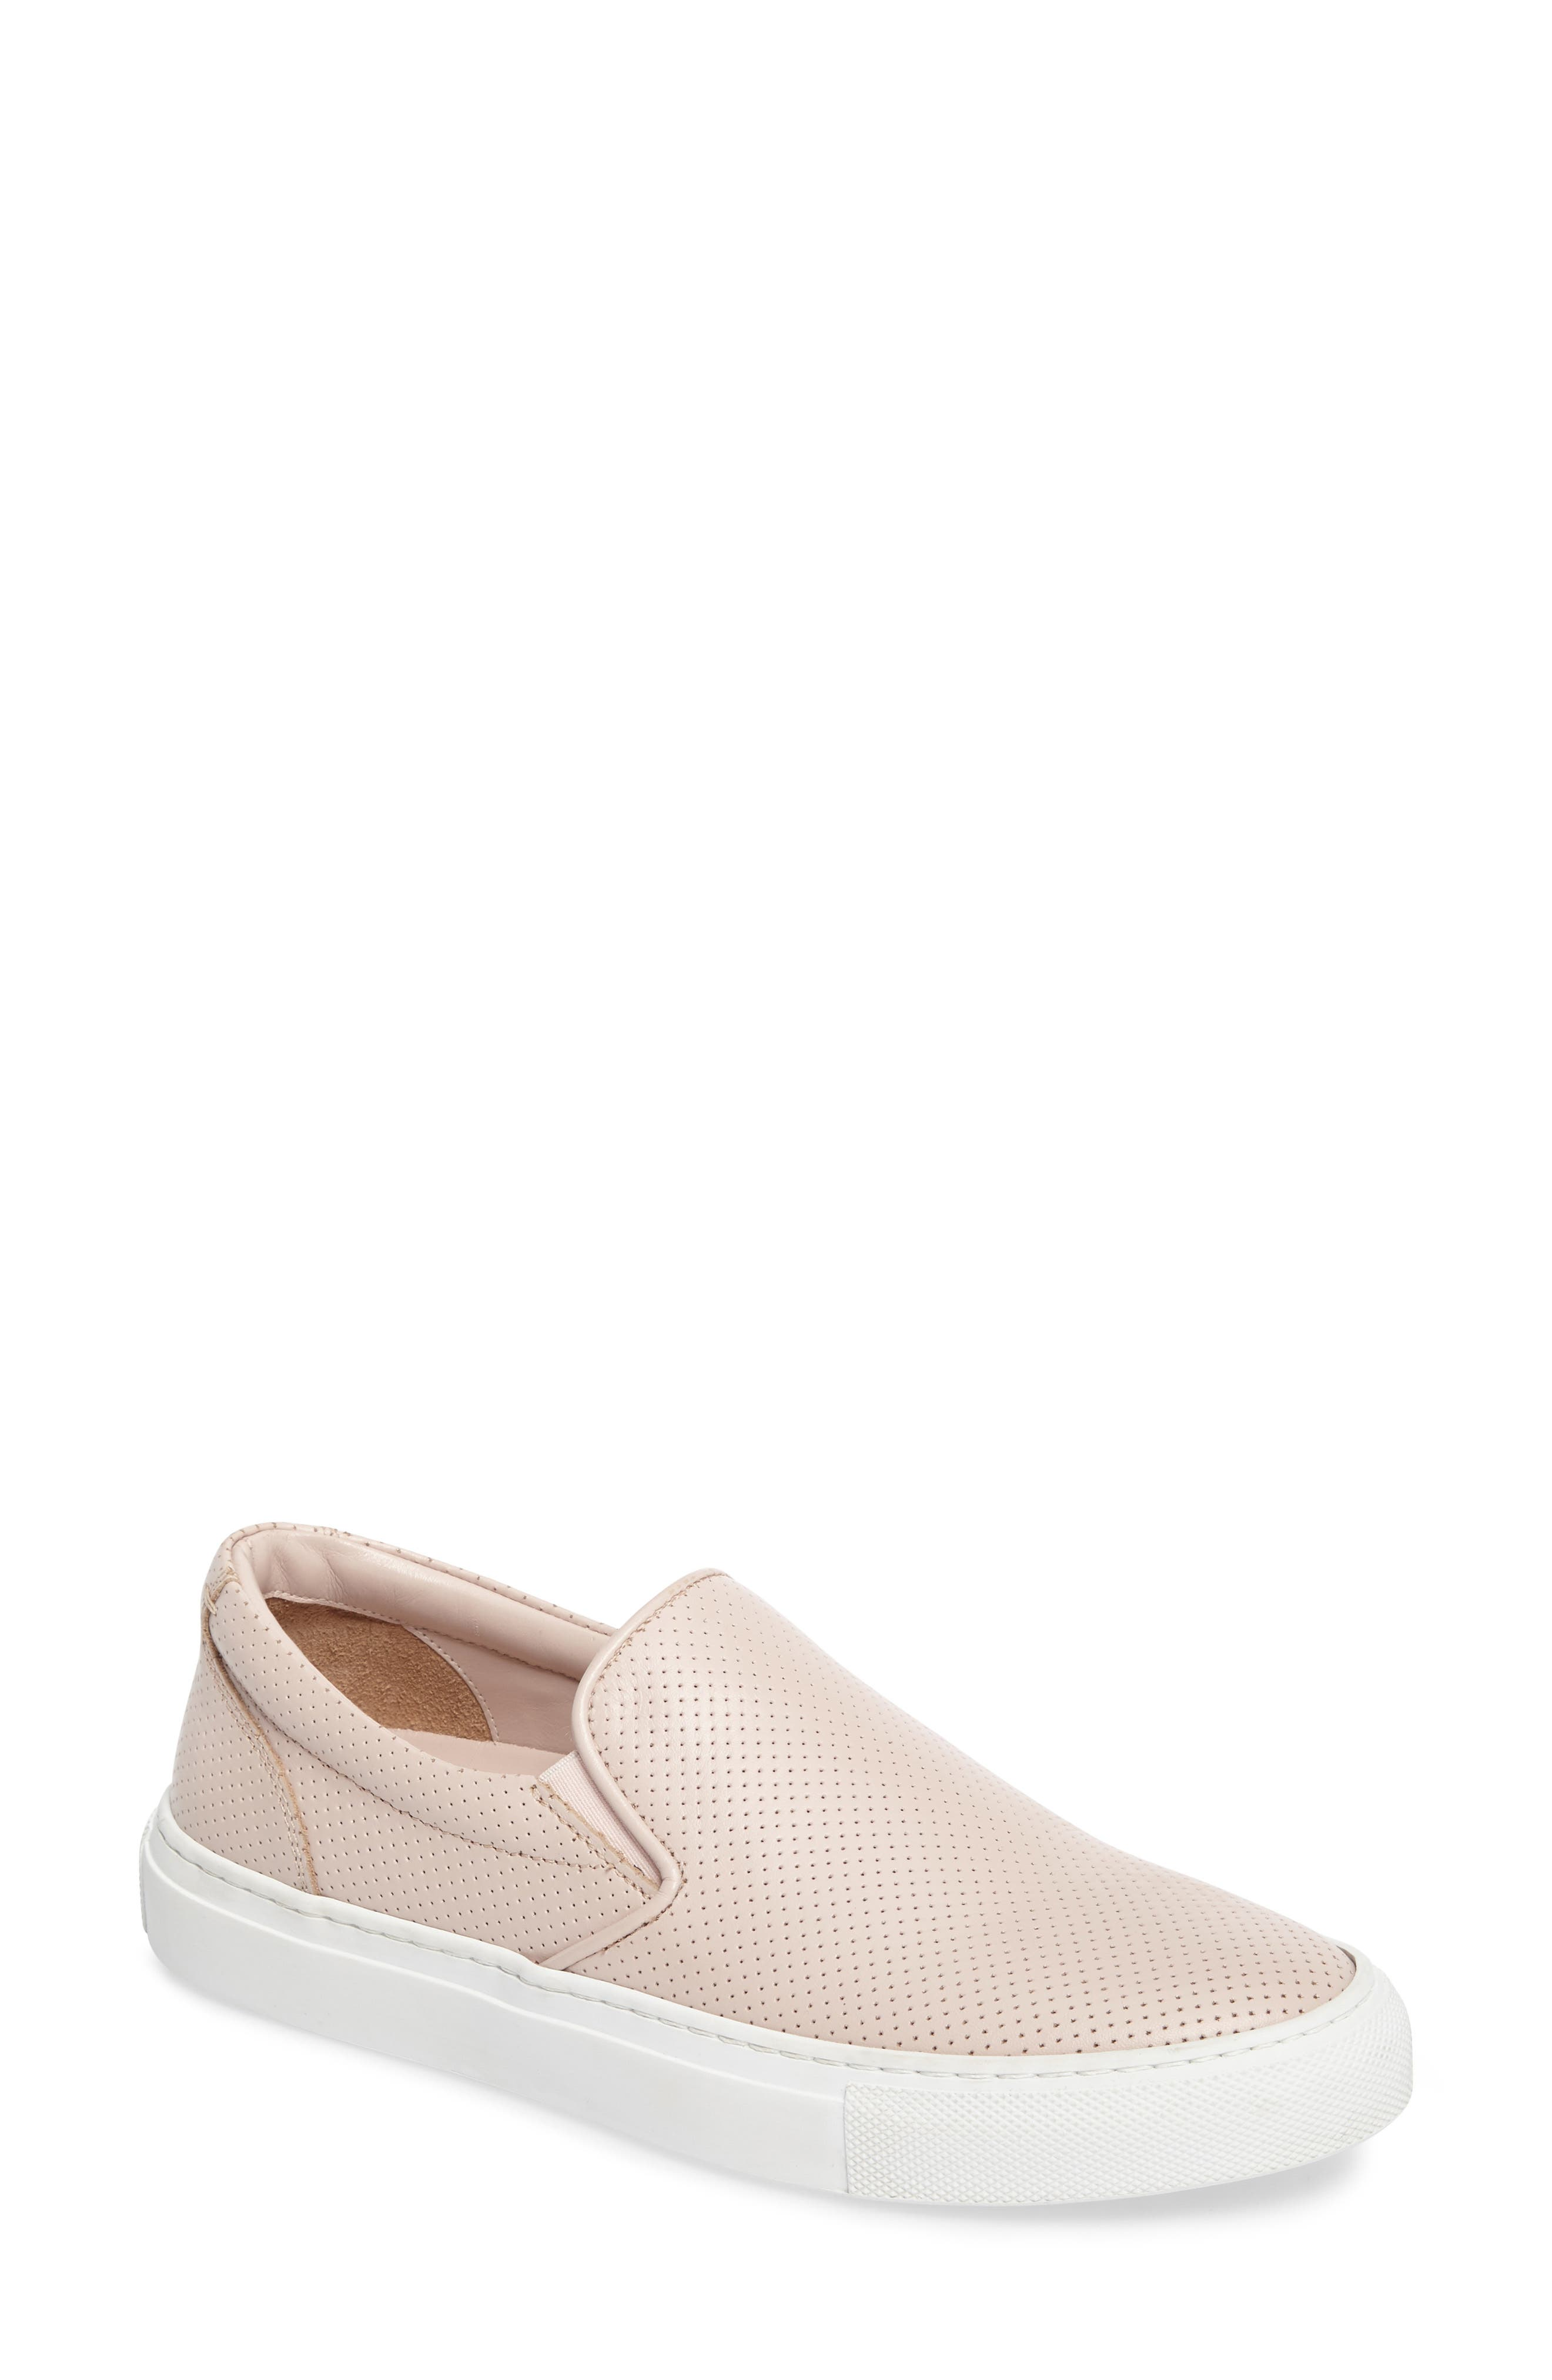 Wooster Slip-On Sneaker,                         Main,                         color, Blush Perforated